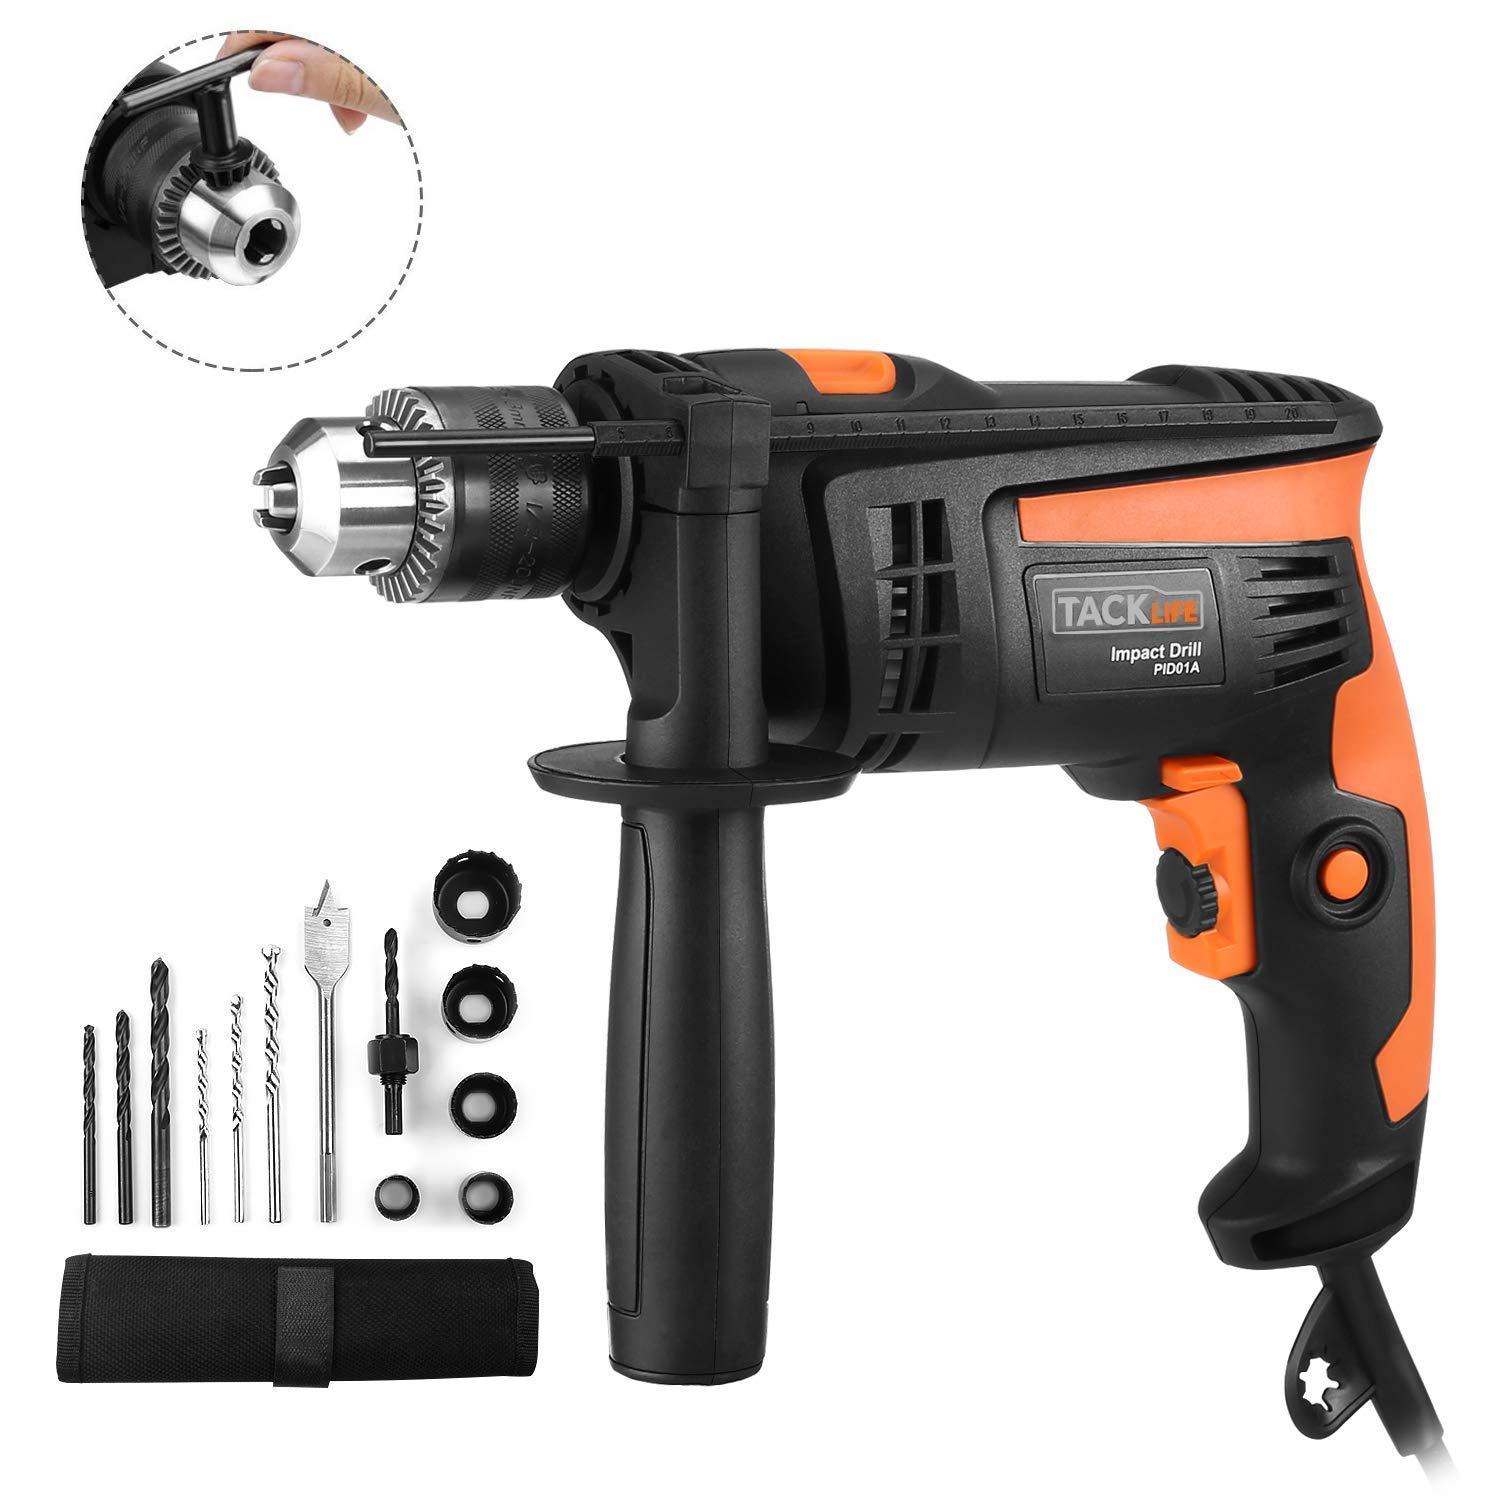 【12 Drill Bits Set Included】 TACKLIFE Hammer Drill 1/2-Inch 2800Rpm Corded Drill Hammer, Variable-Speed Trigger, 360° Rotating Handle, Hammer Drill for Brick, Wood, Steel, Masonry - PID01A